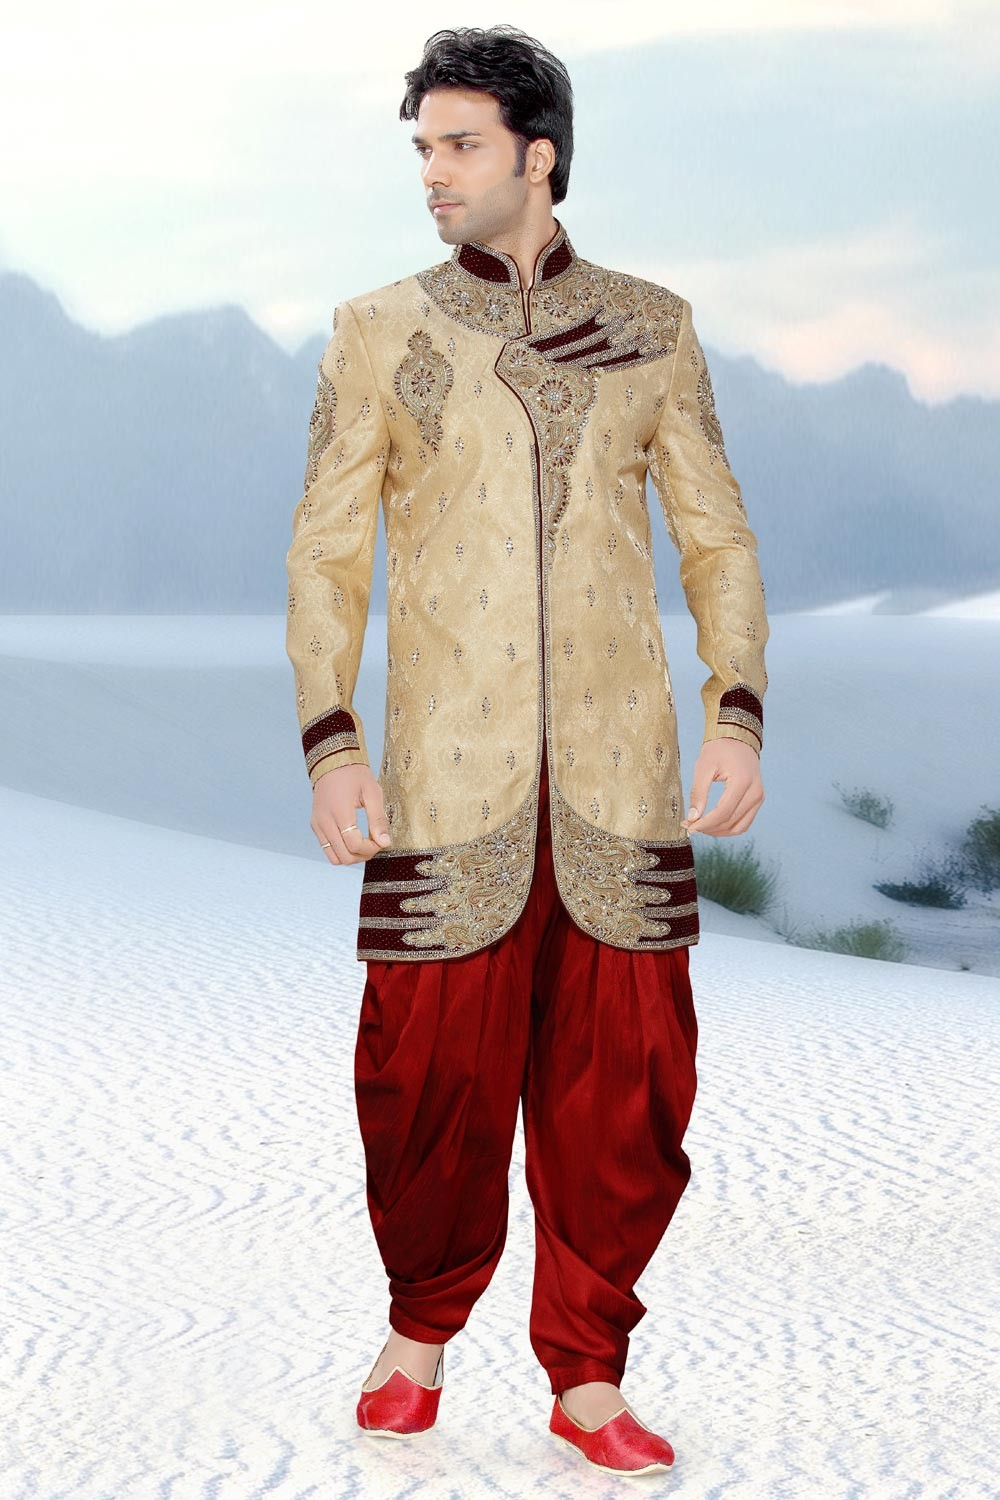 Men's Striking Golden & Maroon Jamawar Men's Indo Western